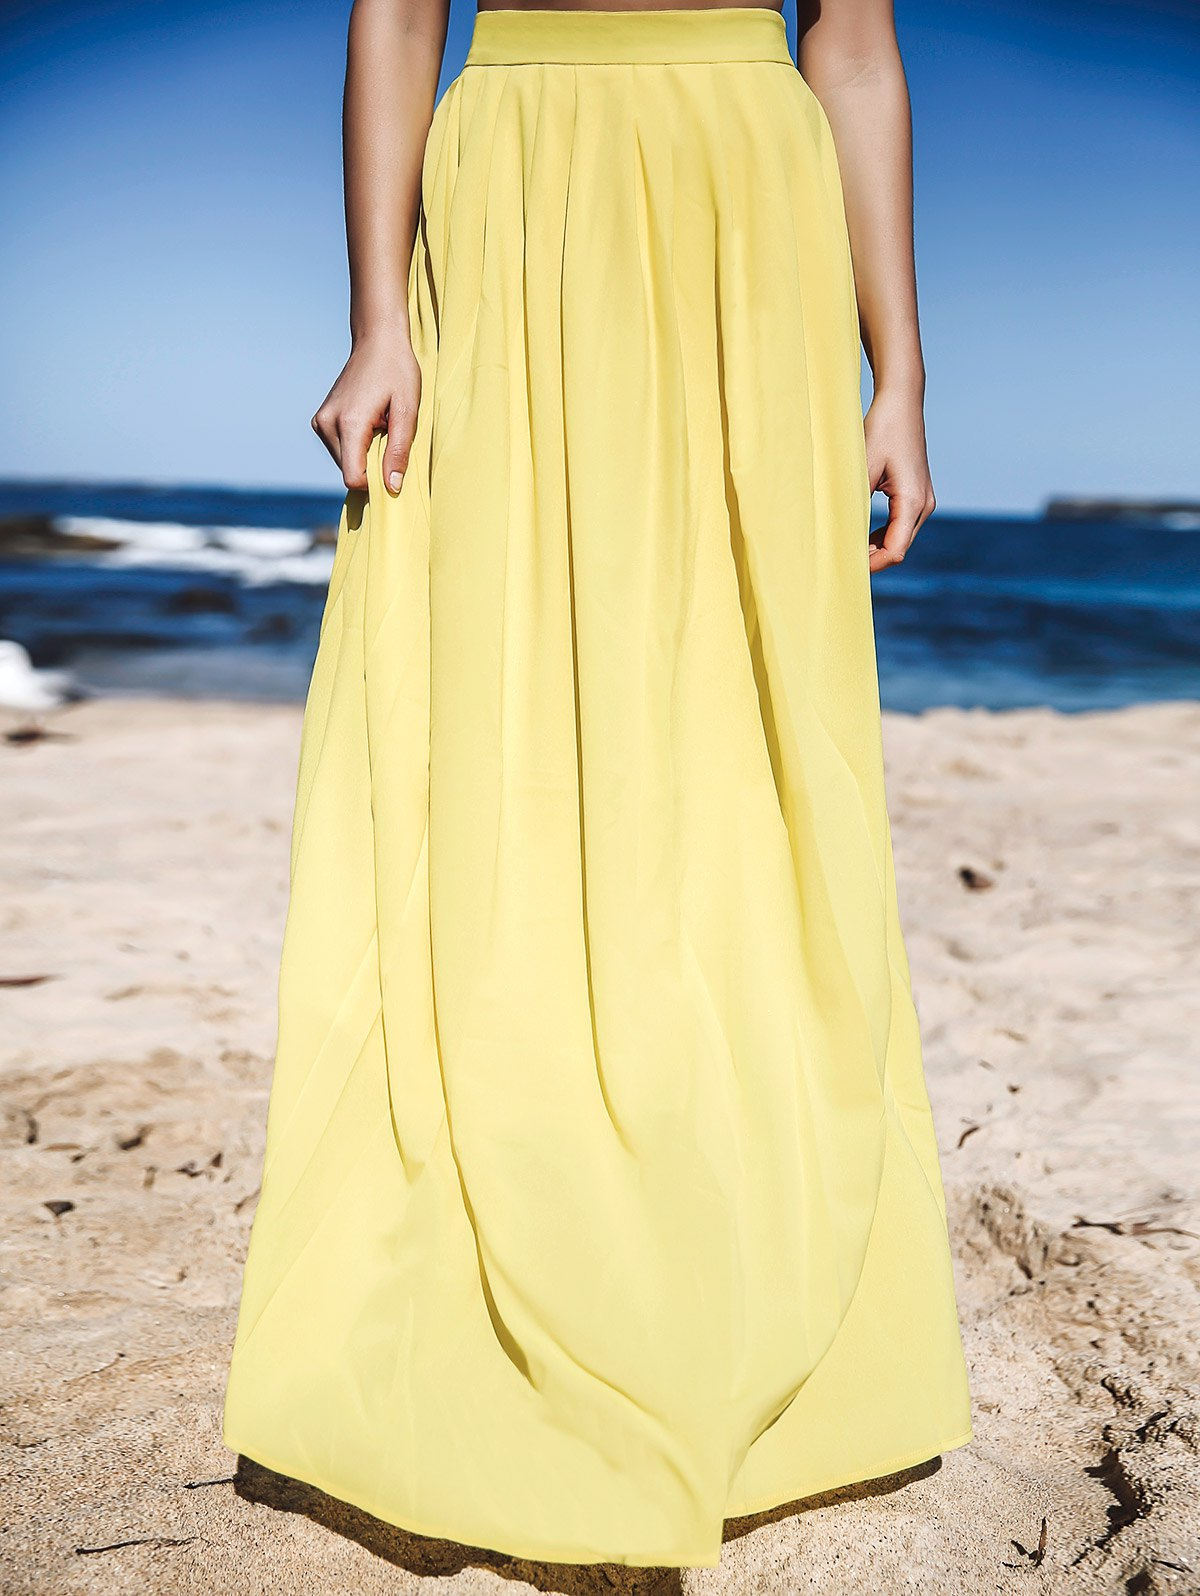 Yellow High Waisted Maxi Skirt - YELLOW S